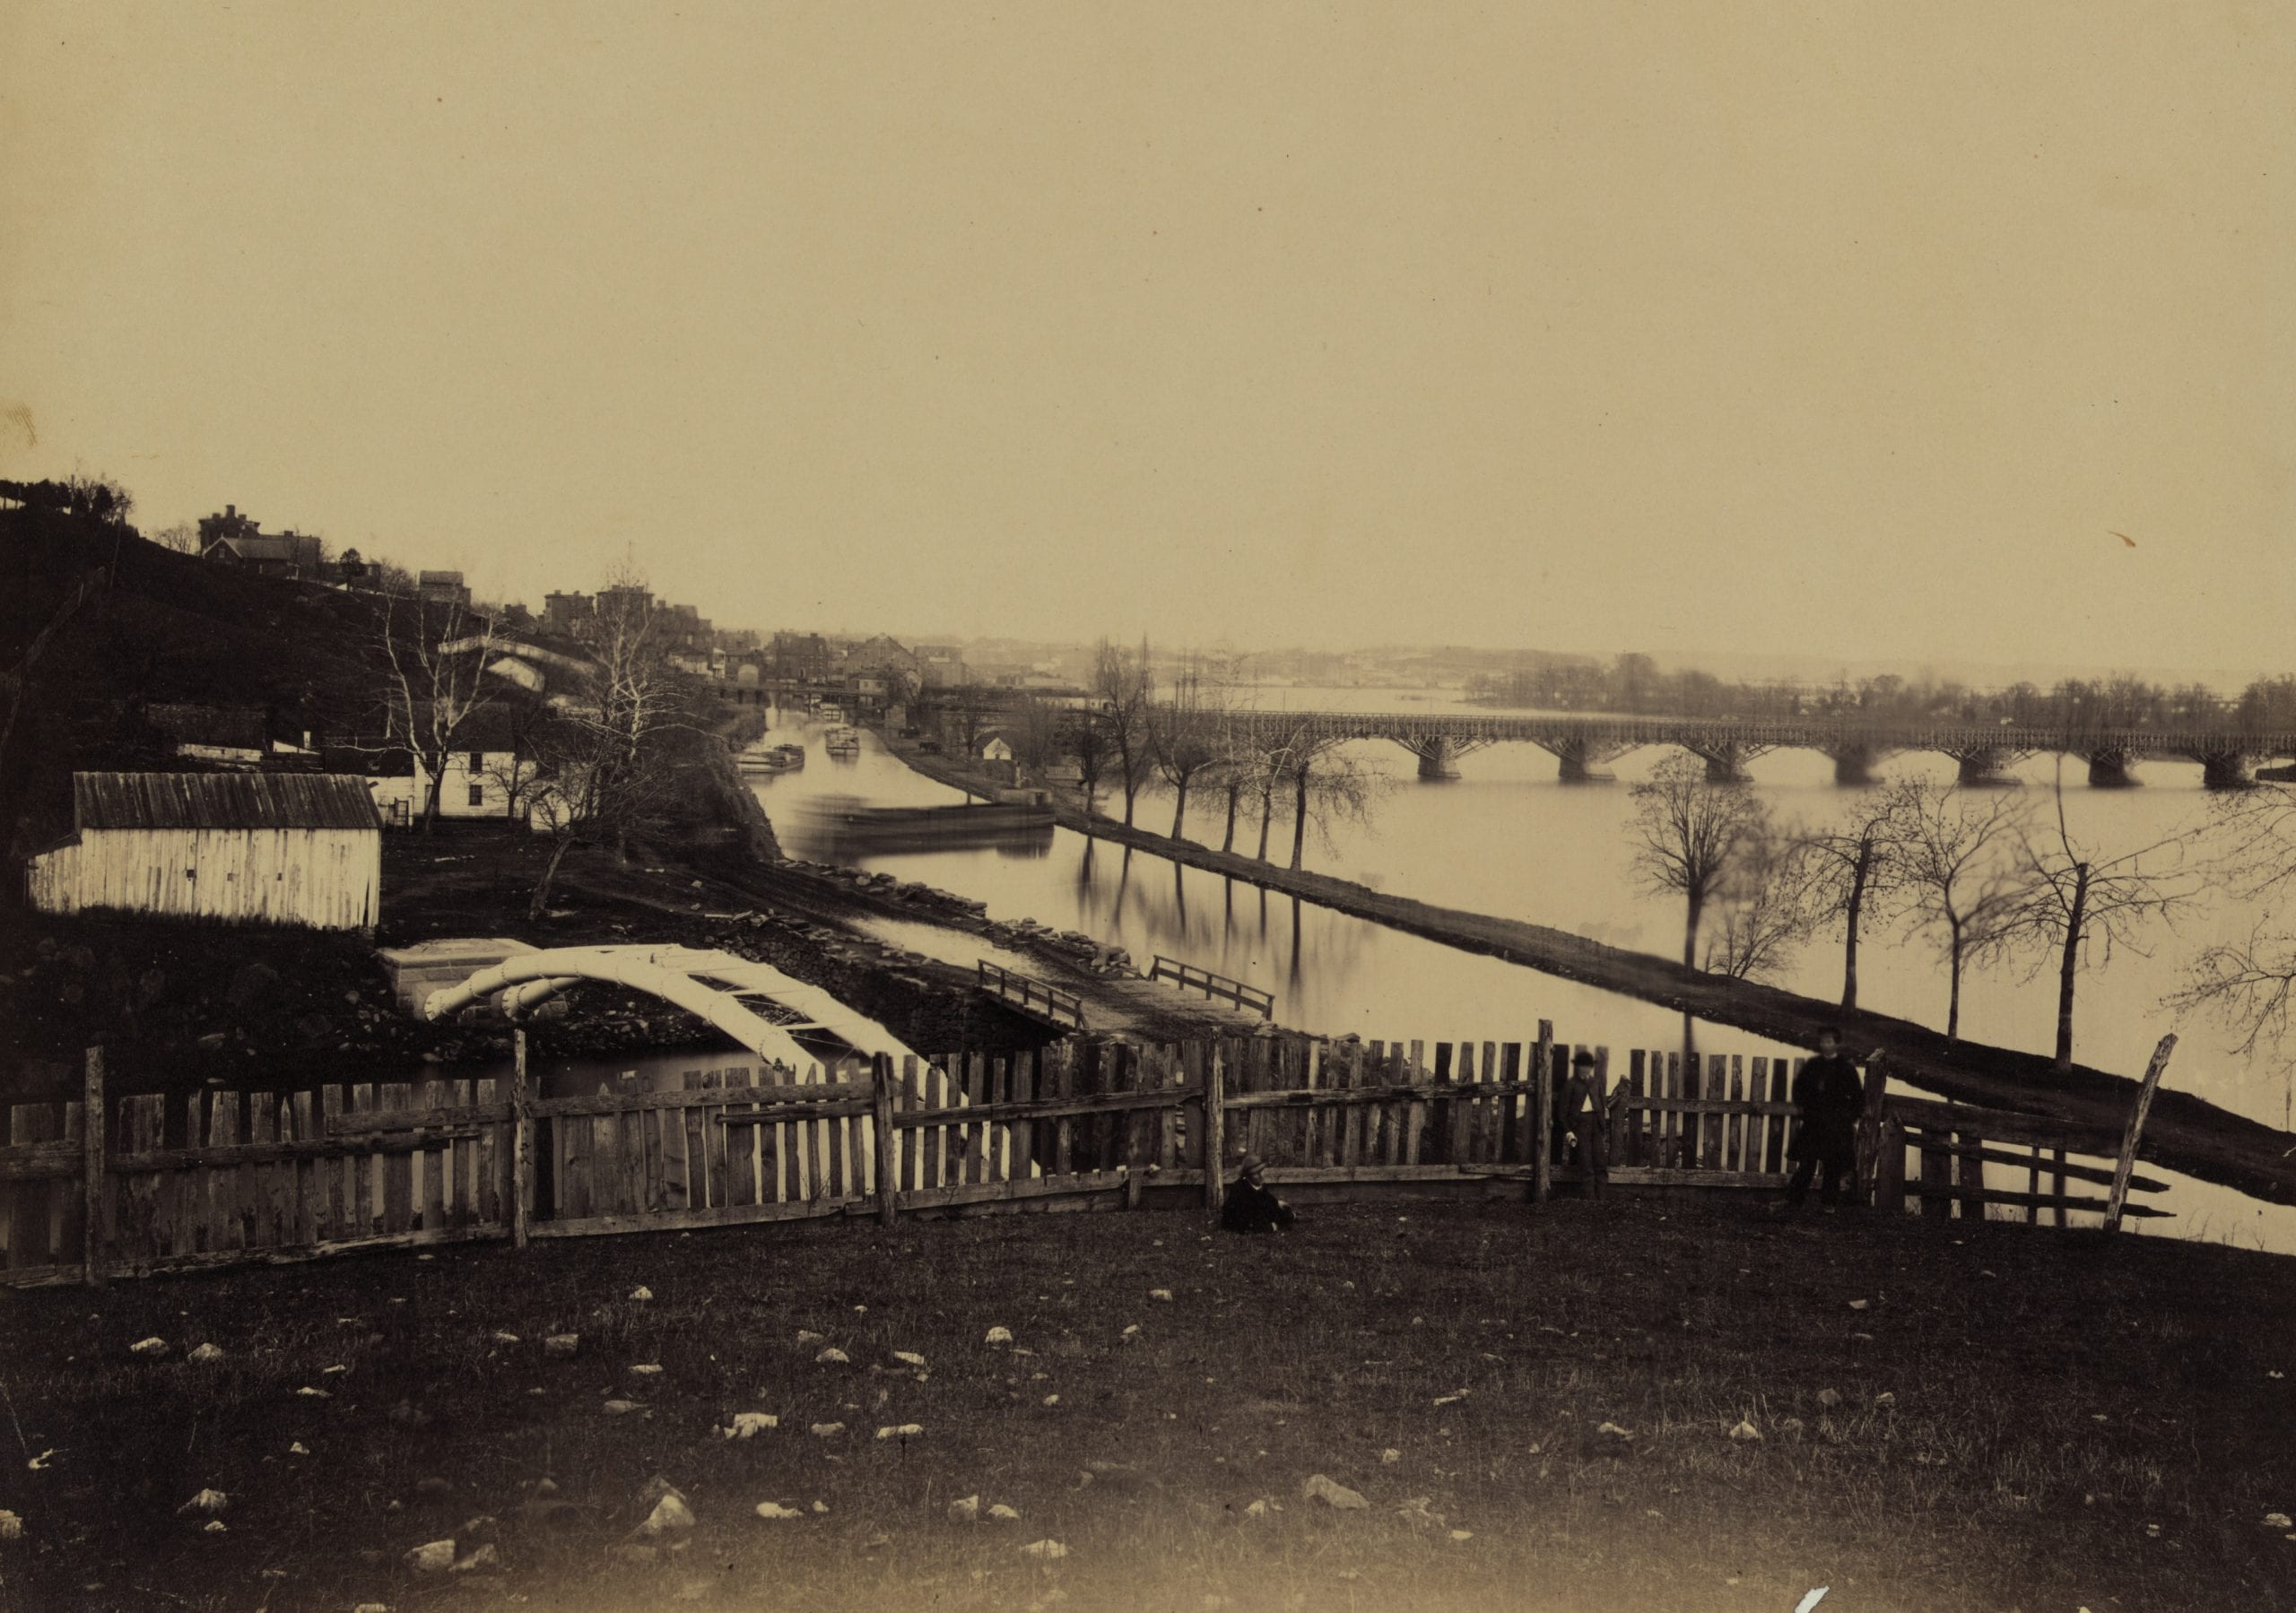 Aqueduct Bridge, Georgetown, D.C., looking toward Washington